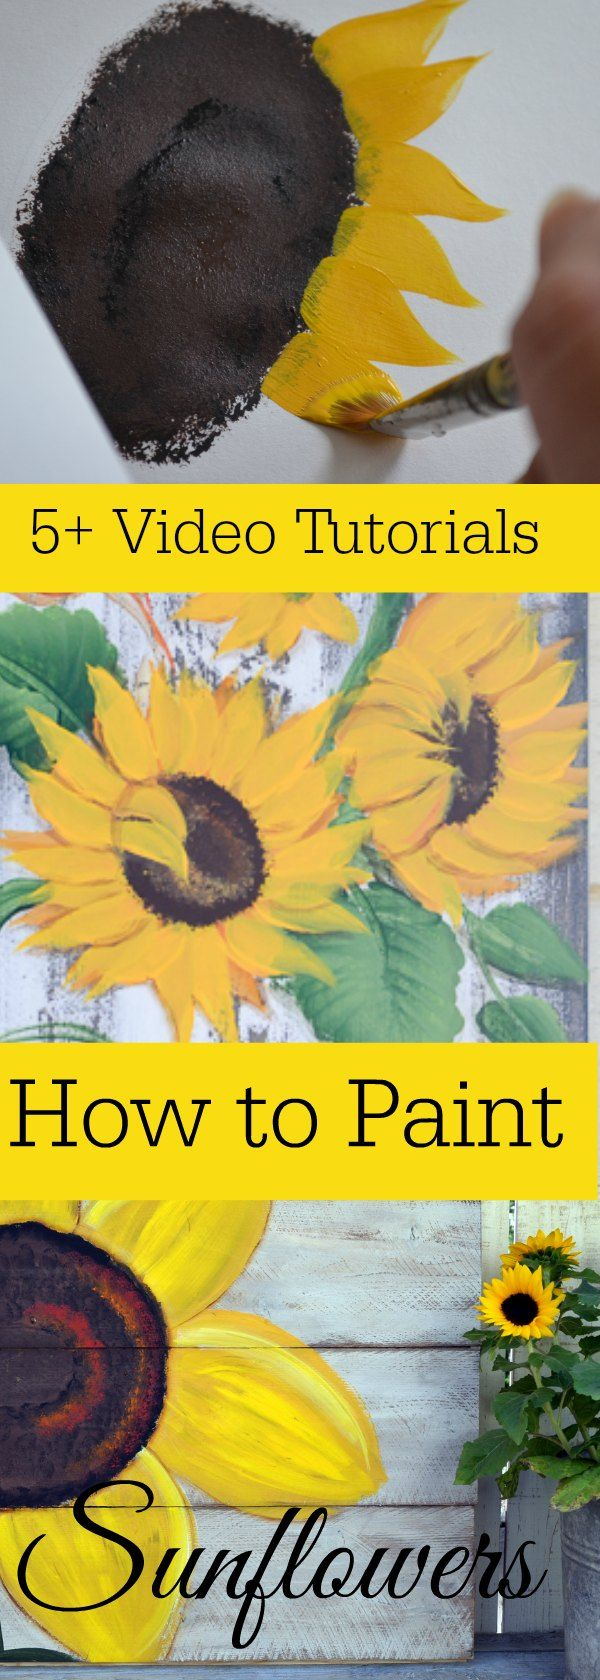 Easy And Fun Sunflower Painting Tutorials By Different Artists